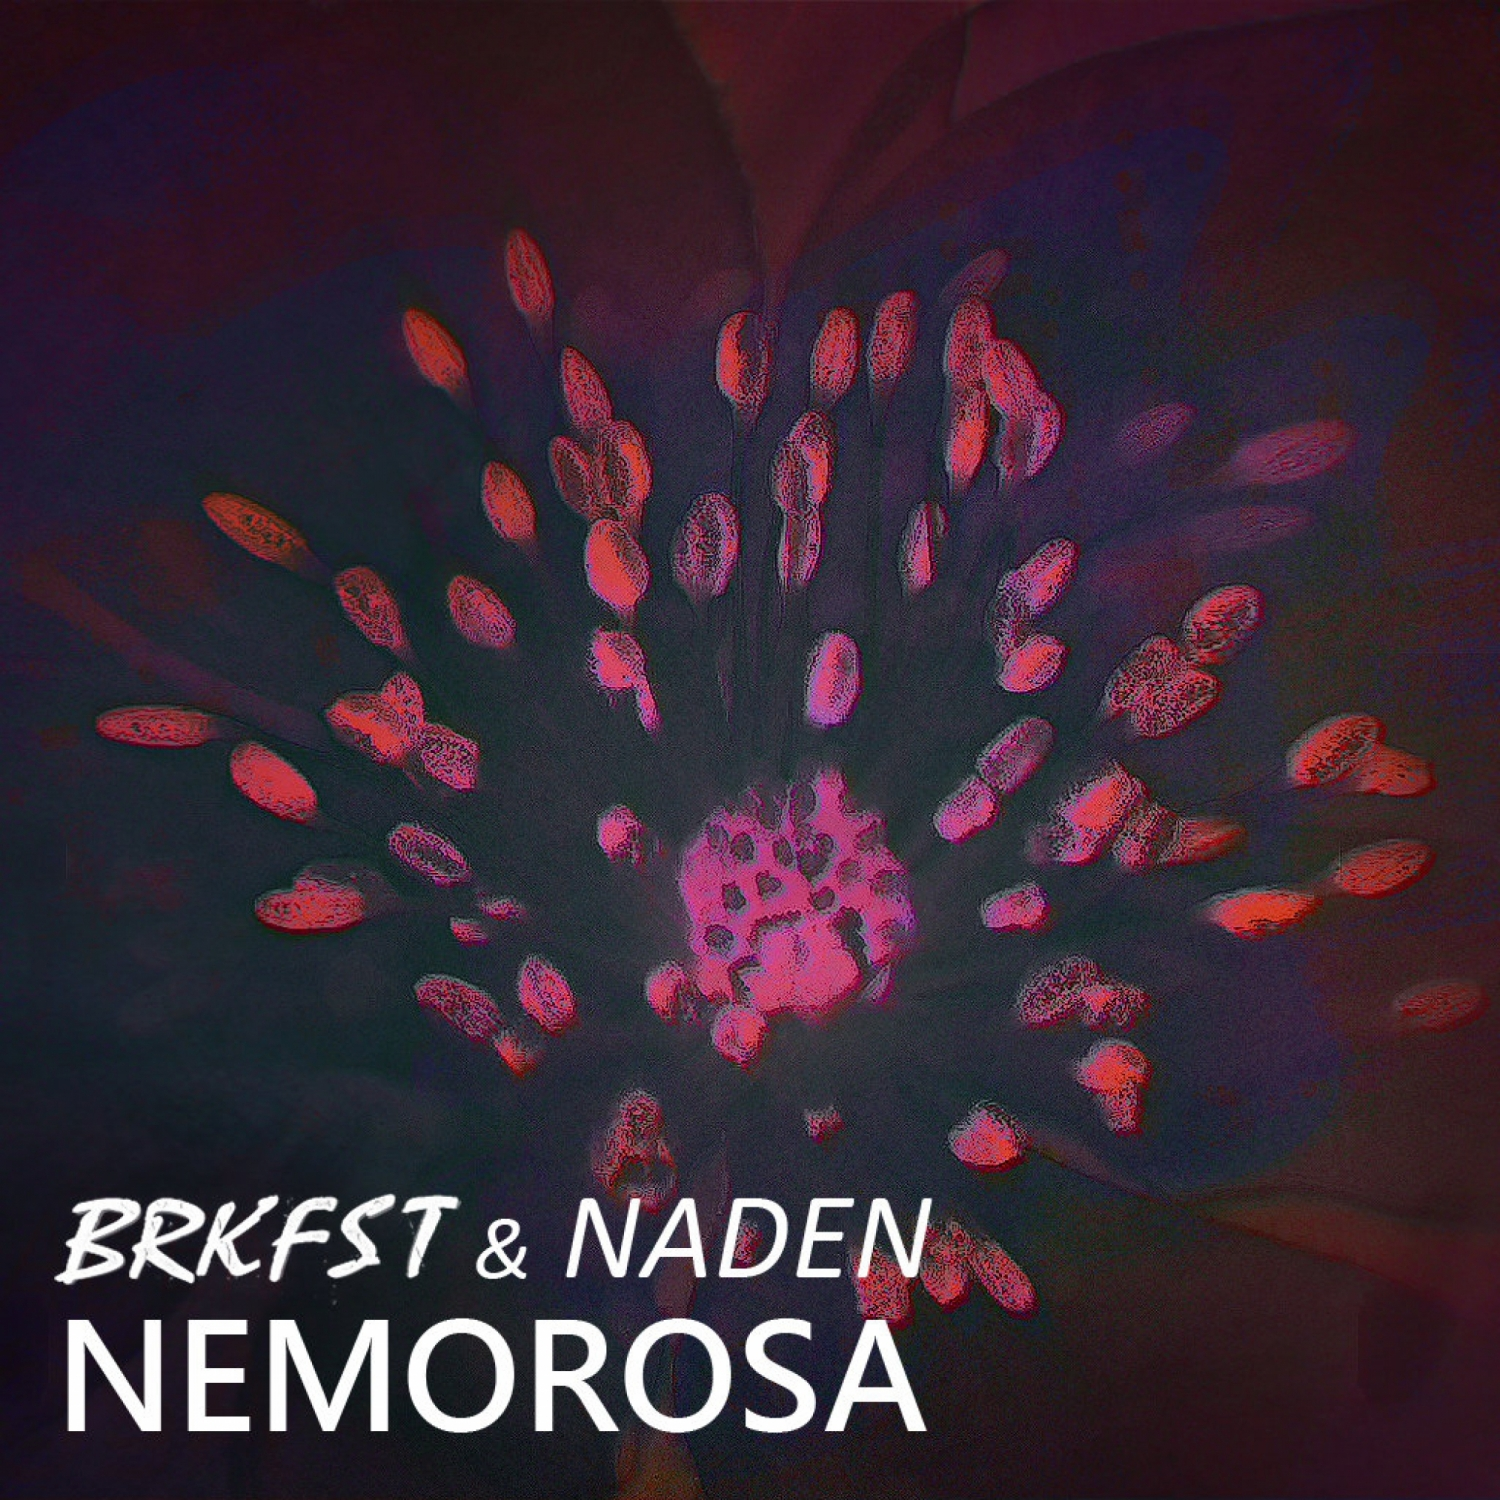 Breakfast  &  BRKFST  - Nemorosa (Naden Remix)